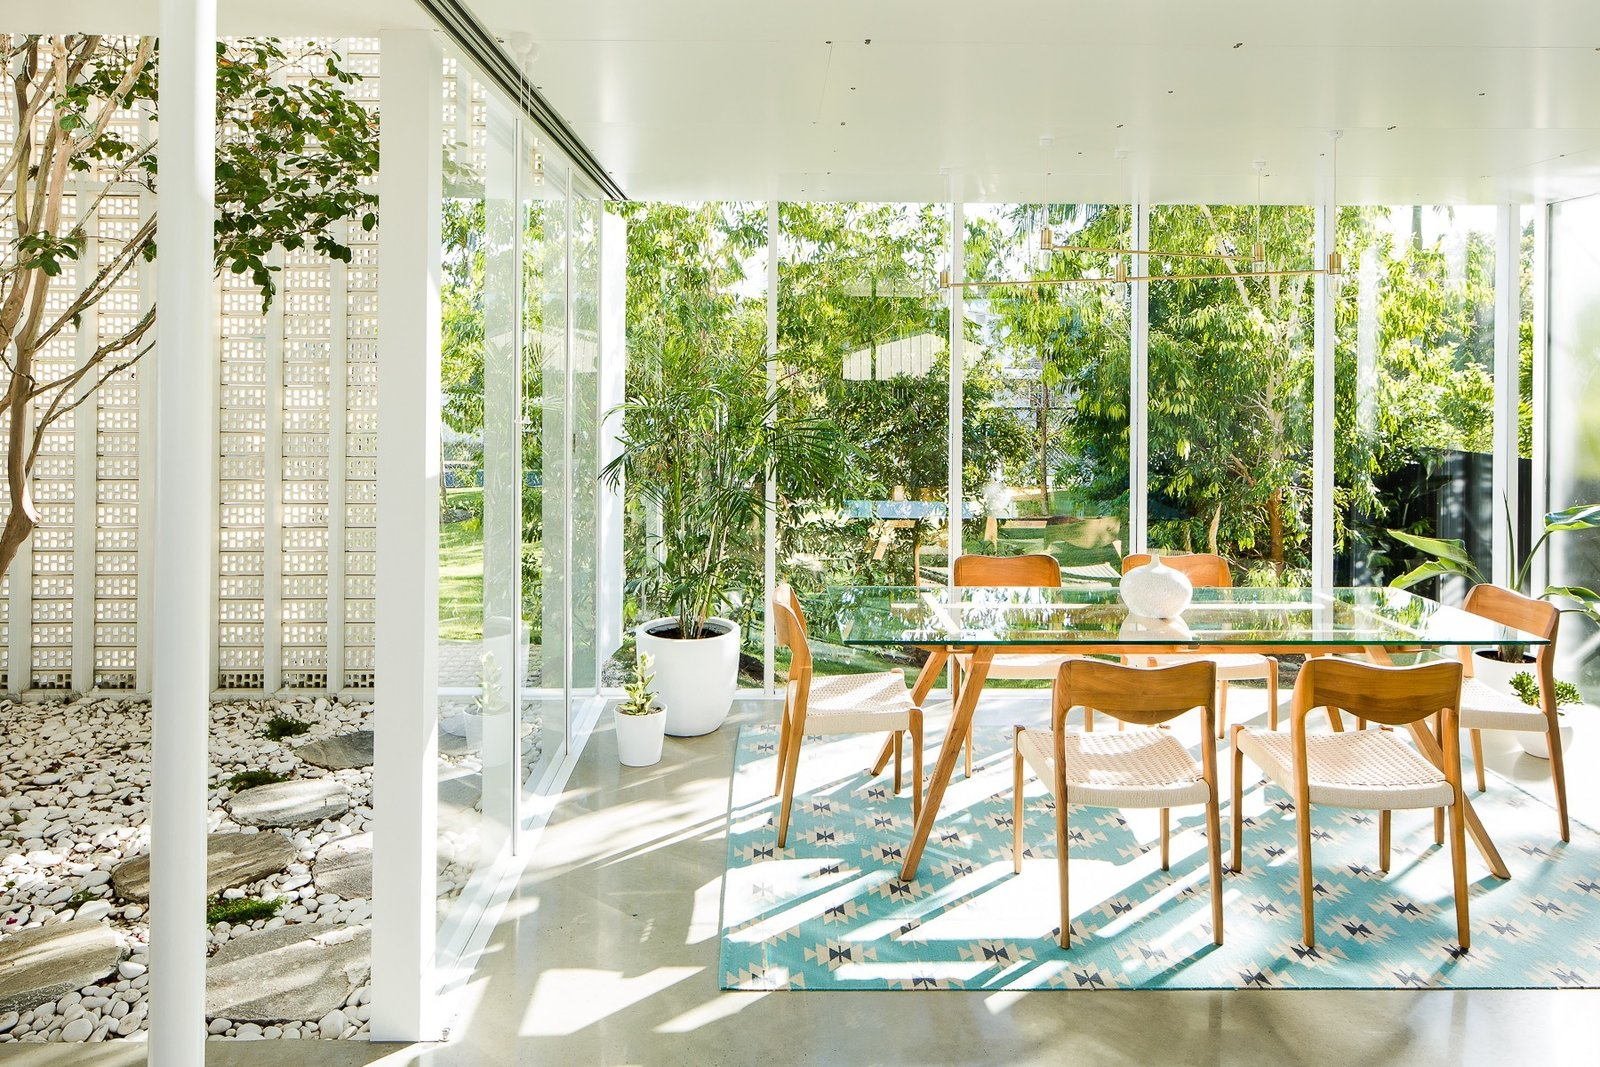 Dining, Table, Chair, Recessed, and Concrete  Best Dining Photos from The Naranga Avenue House